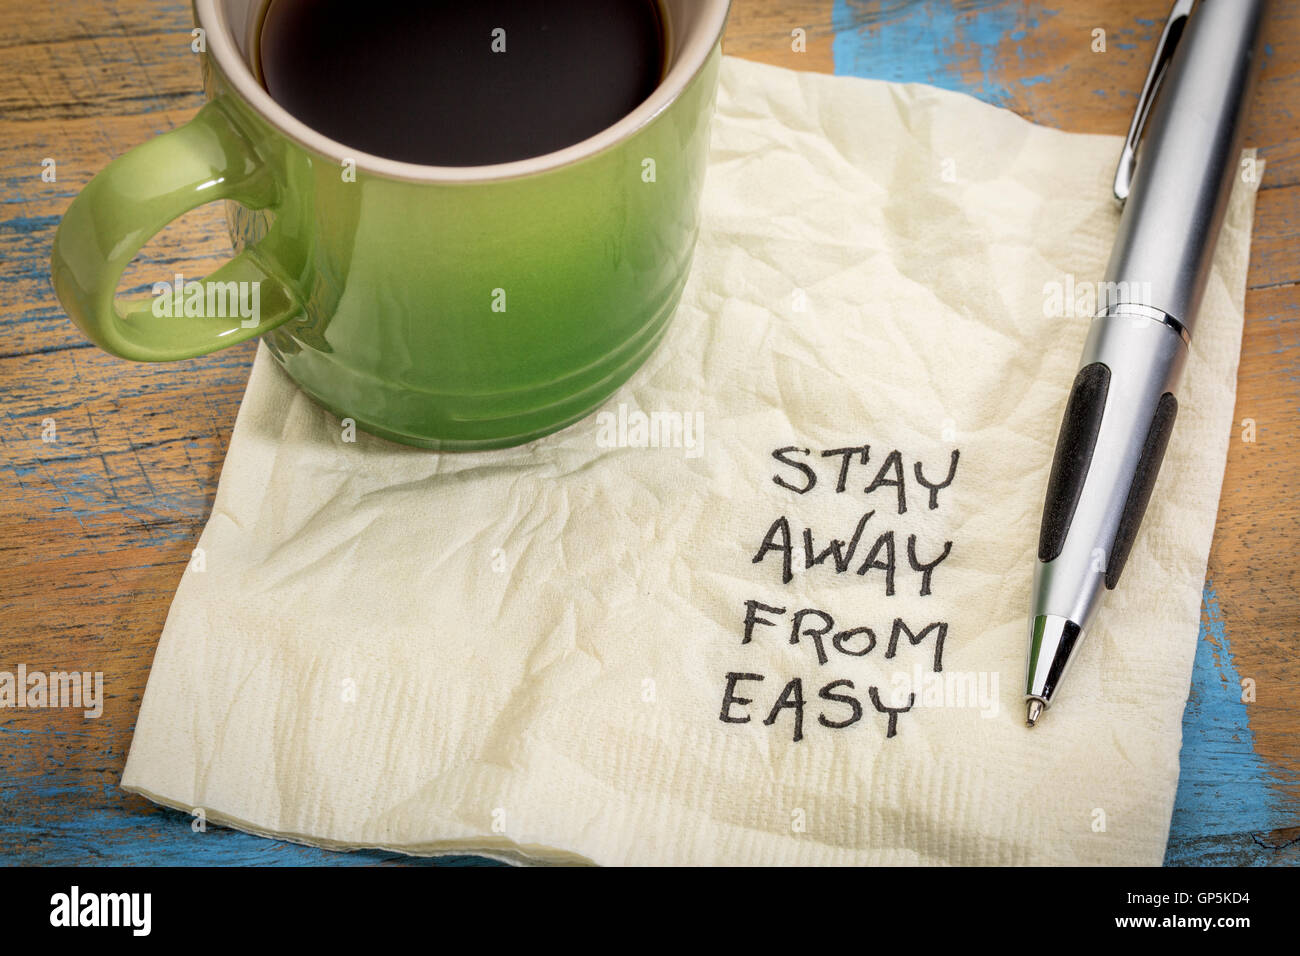 Stay away from easy advice or reminder - handwriting on a napkin with a cup of coffee - Stock Image